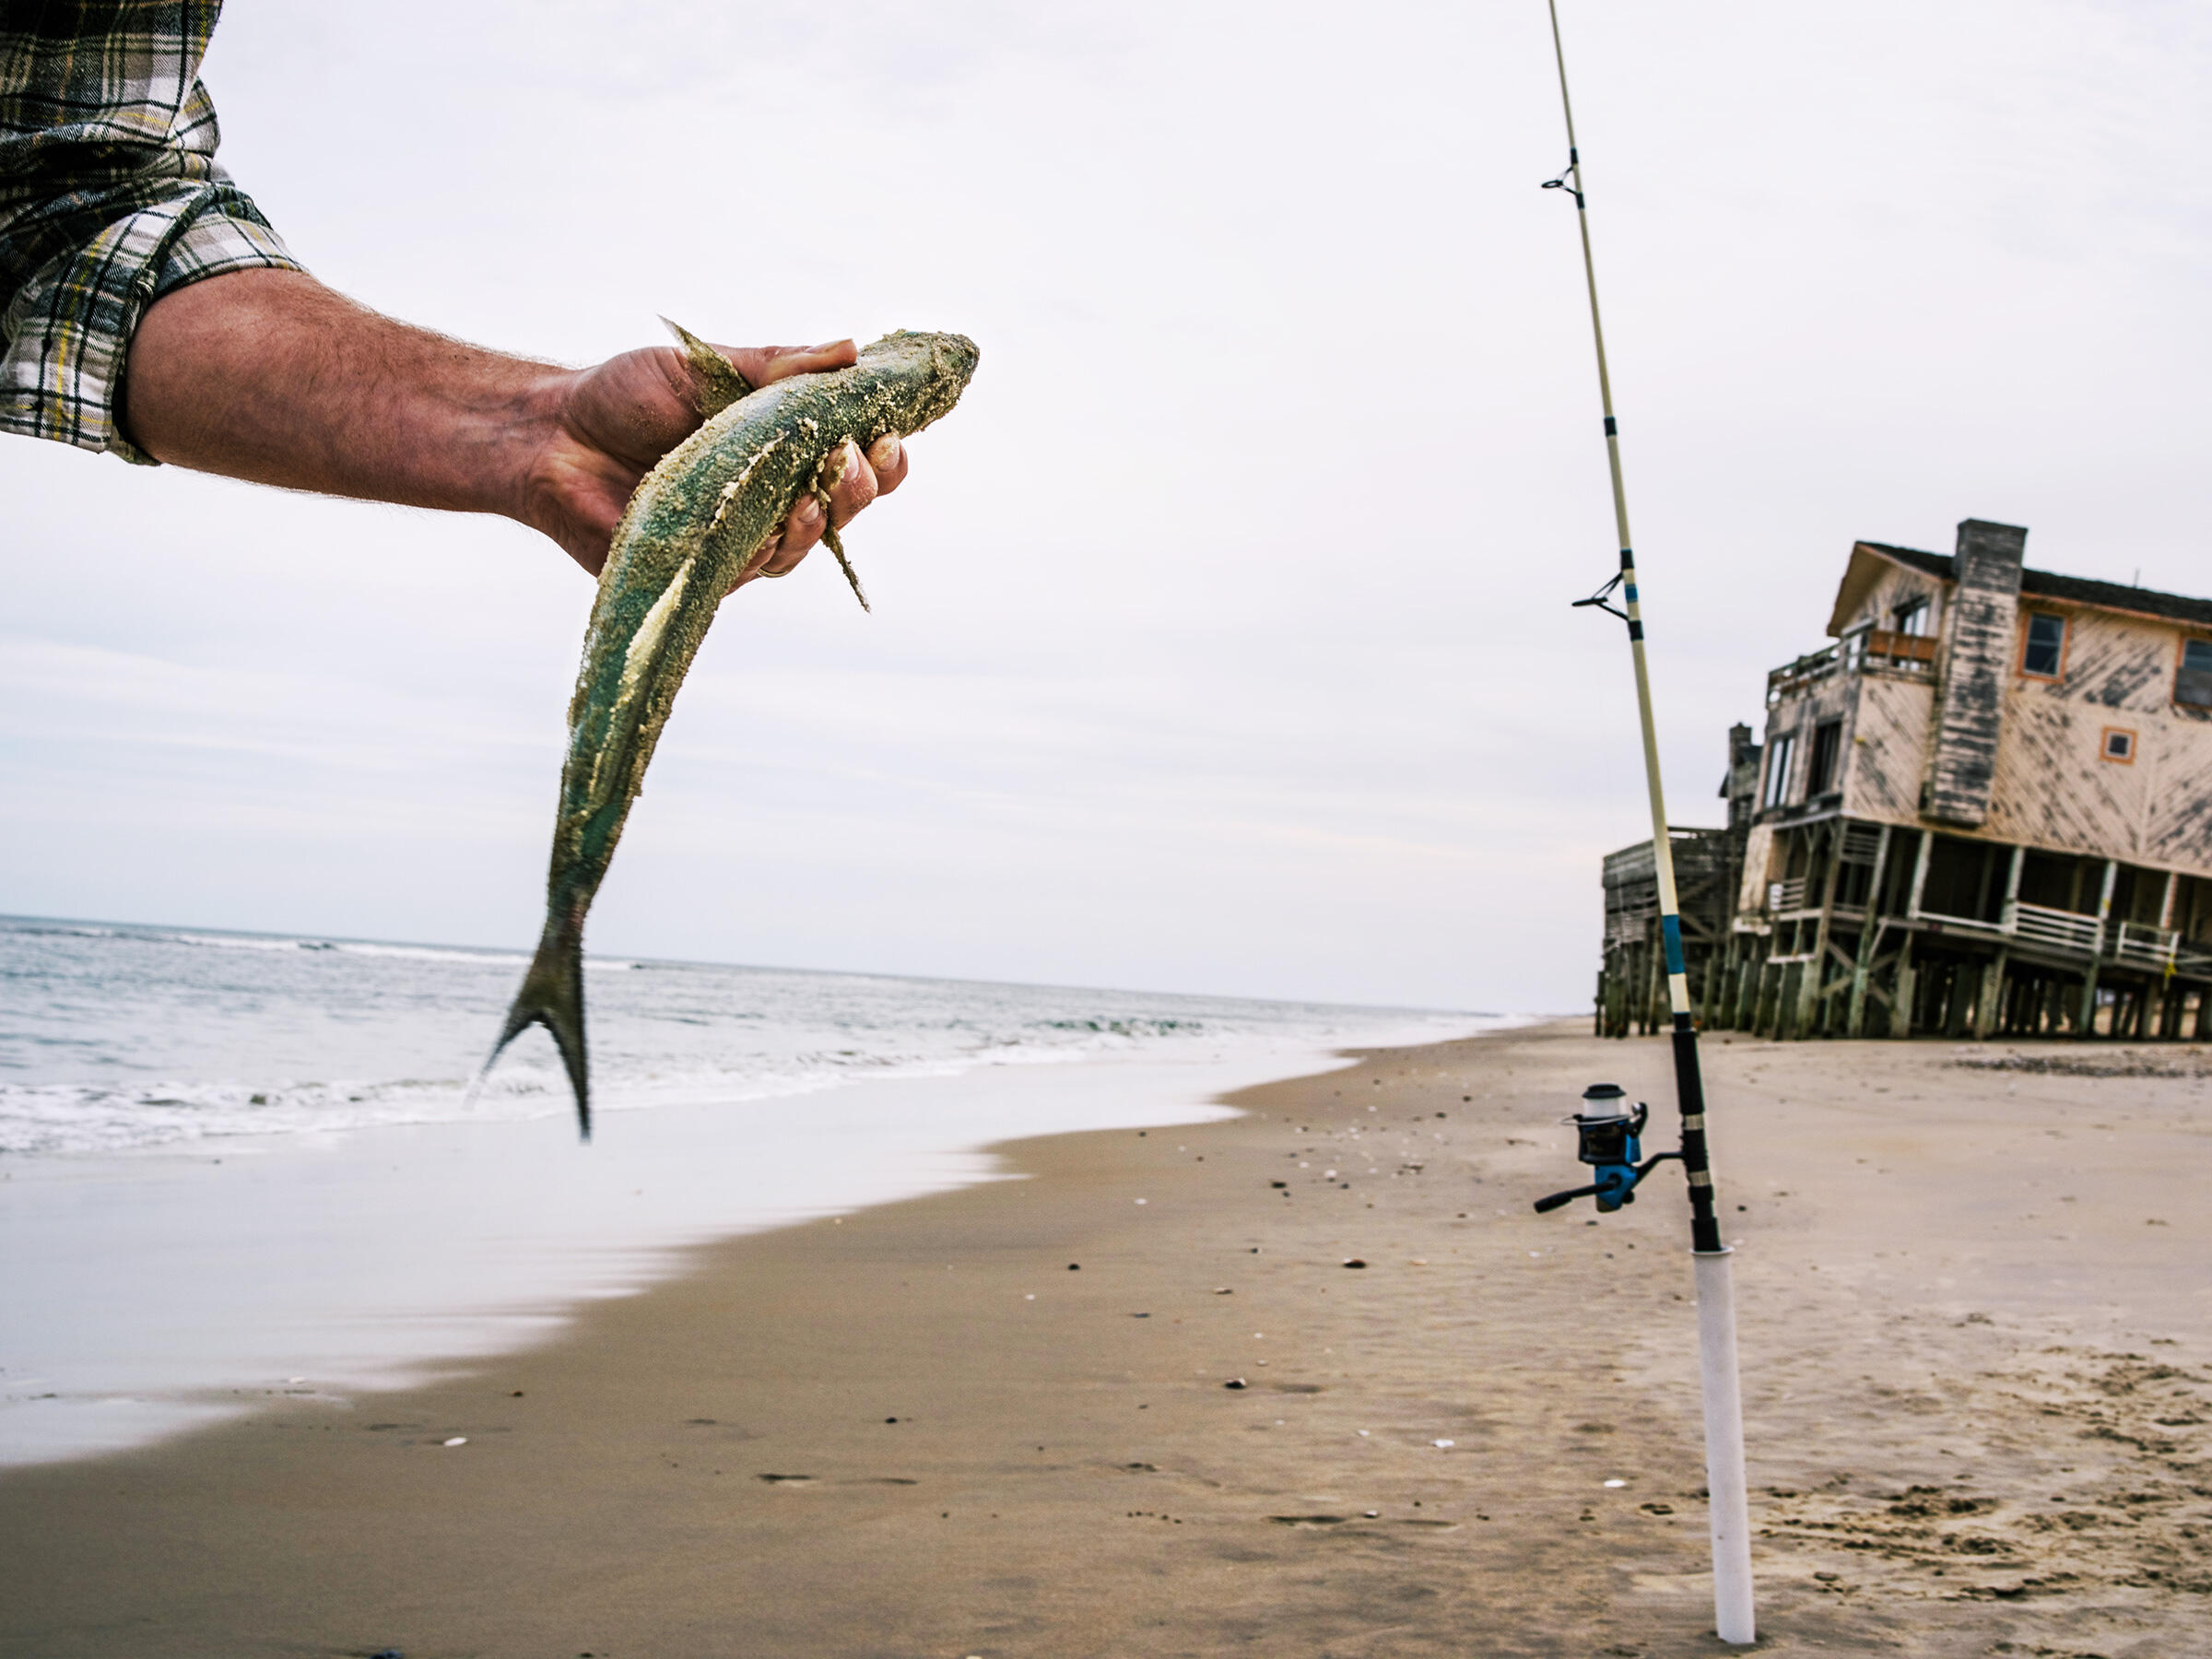 Brian Winnett, left, hauls in a blue fish near a stretch of condemned homes on the beach in Nags Head to fish on the Outer Banks, NC. Greg Kahn